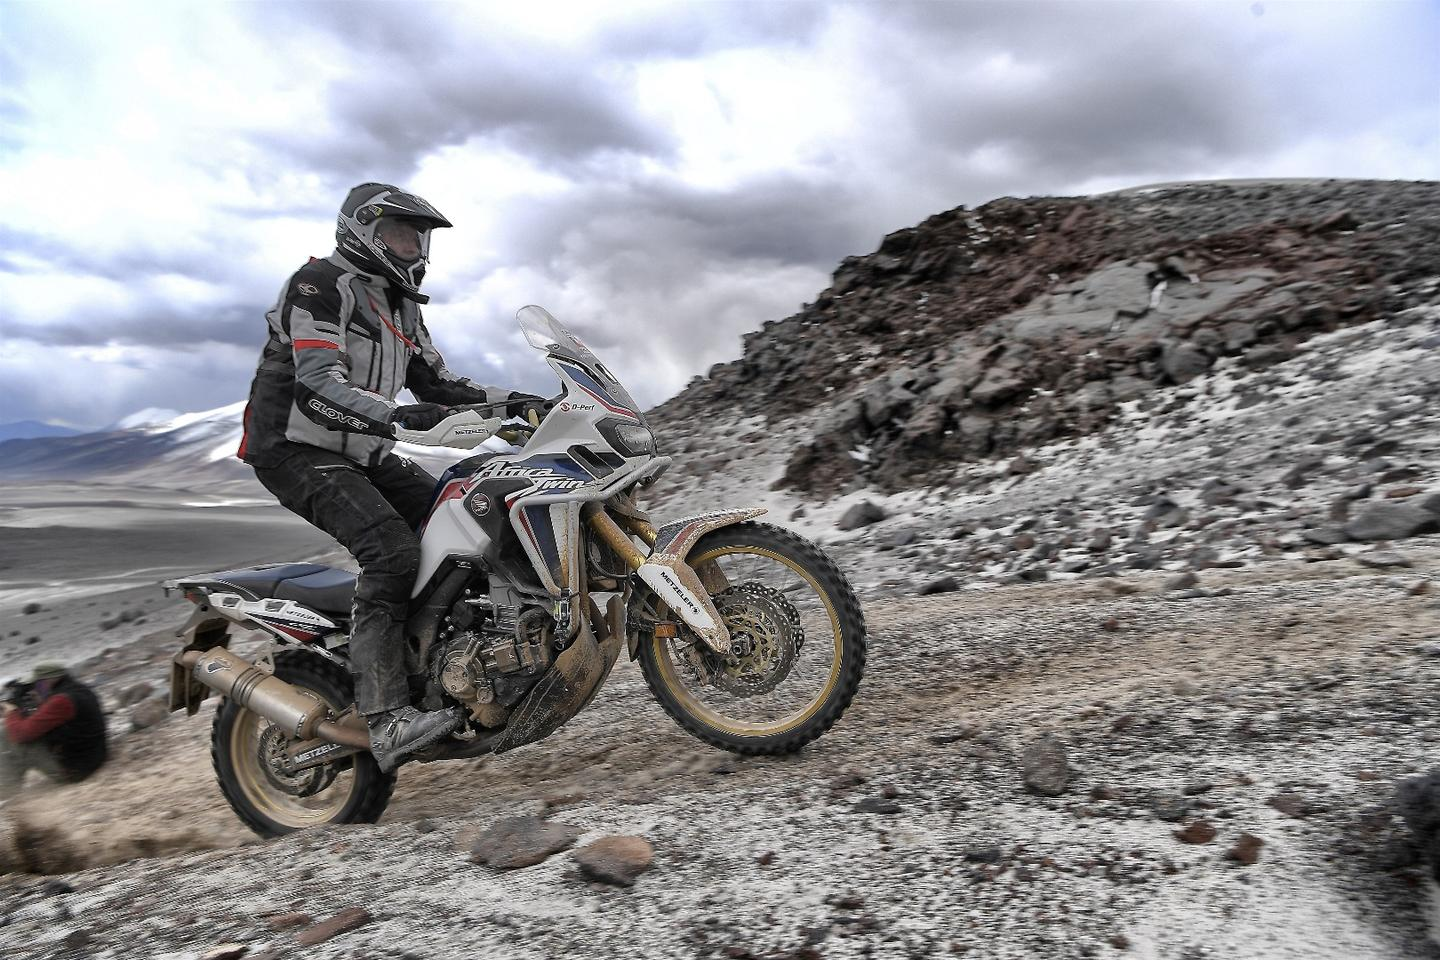 Honda demonstrates Africa Twin's skills at record altitude